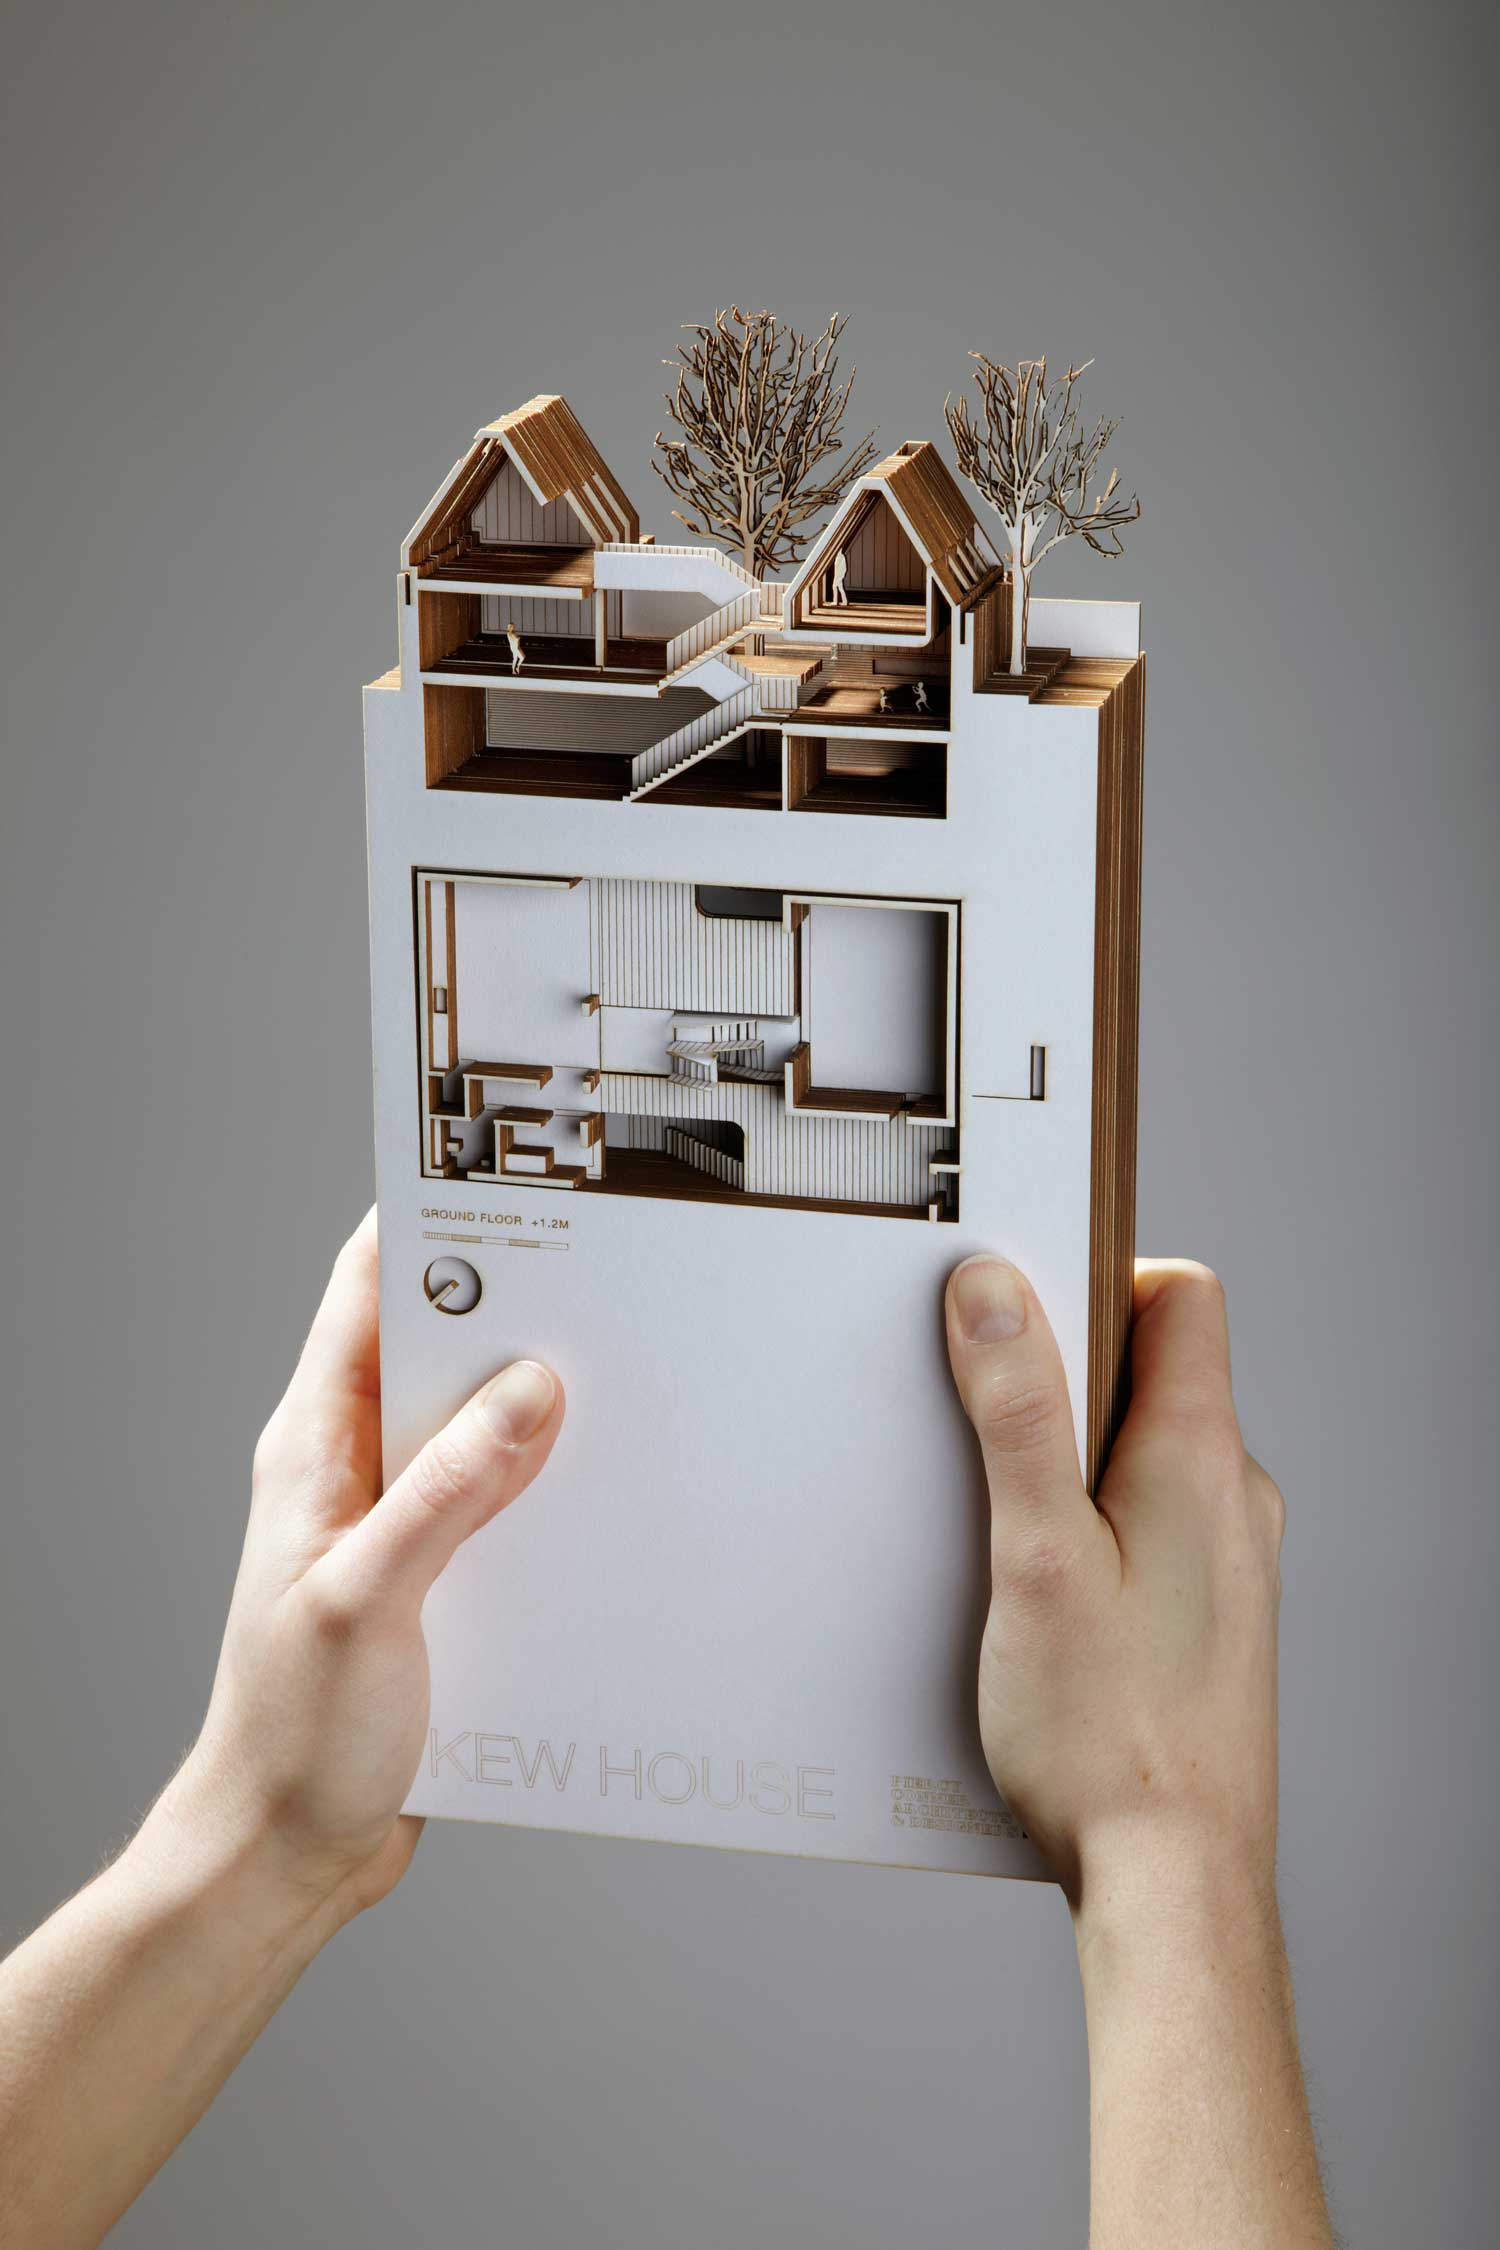 Picture Book Illustration Making An Architectural Model: Kew House By Piercy & Company In London